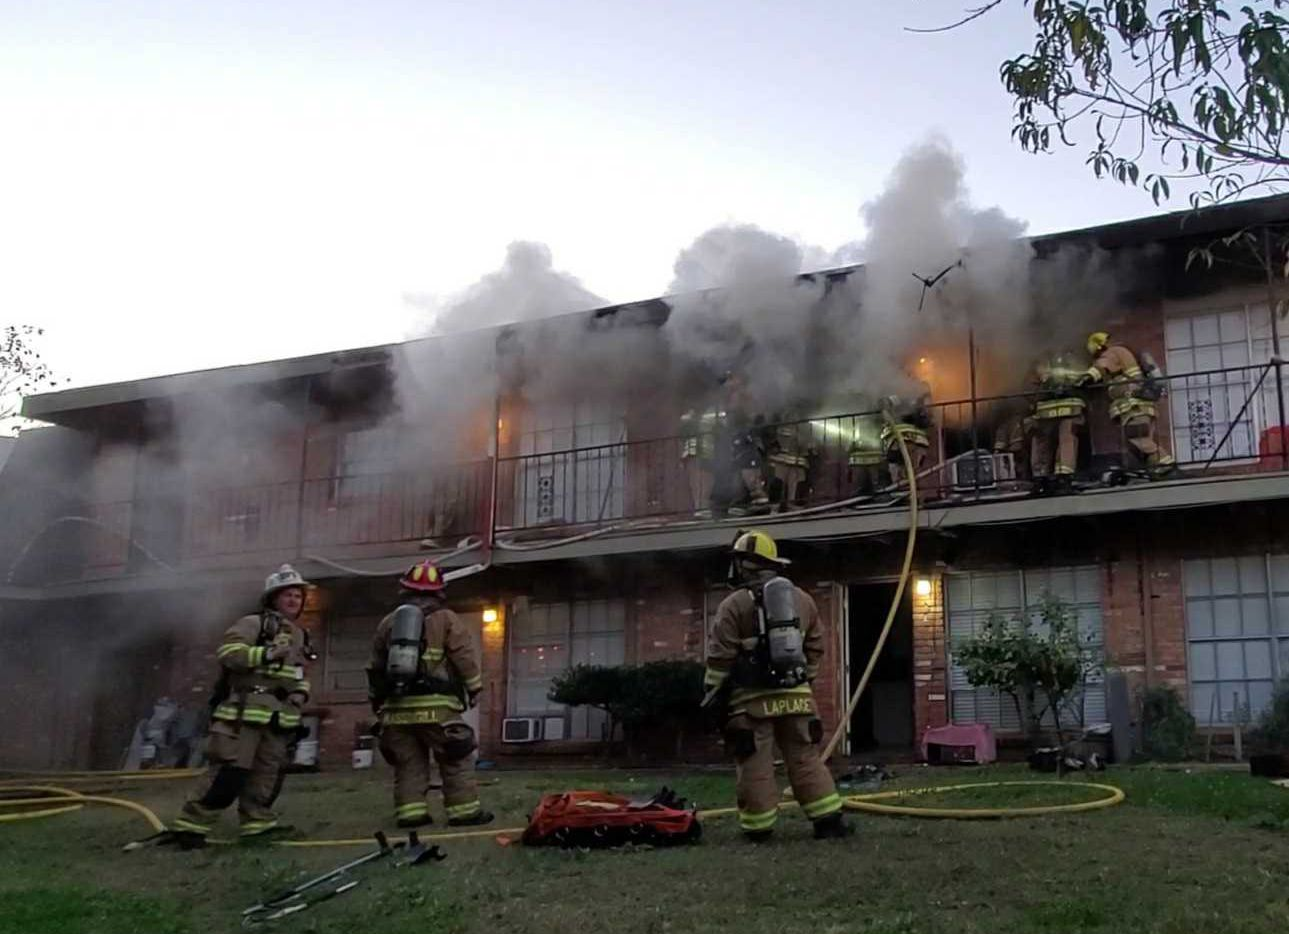 Firefighters found a man dead while extinguishing an apartment fire in Old East Dallas on Wednesday.